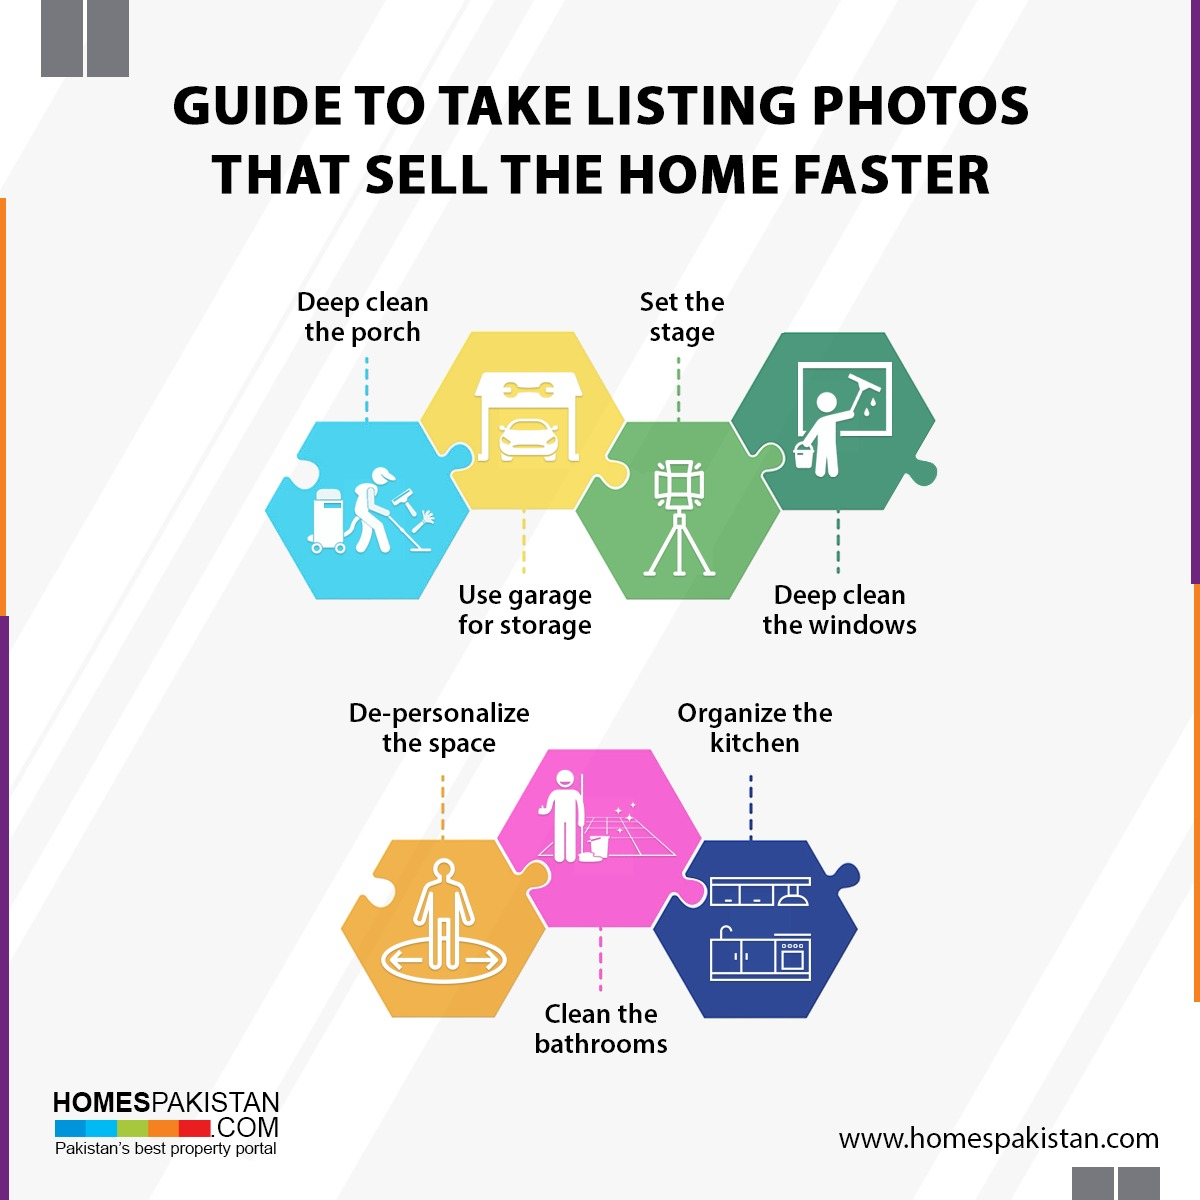 Guide to Take Listing Photos That Sell the Home Faster